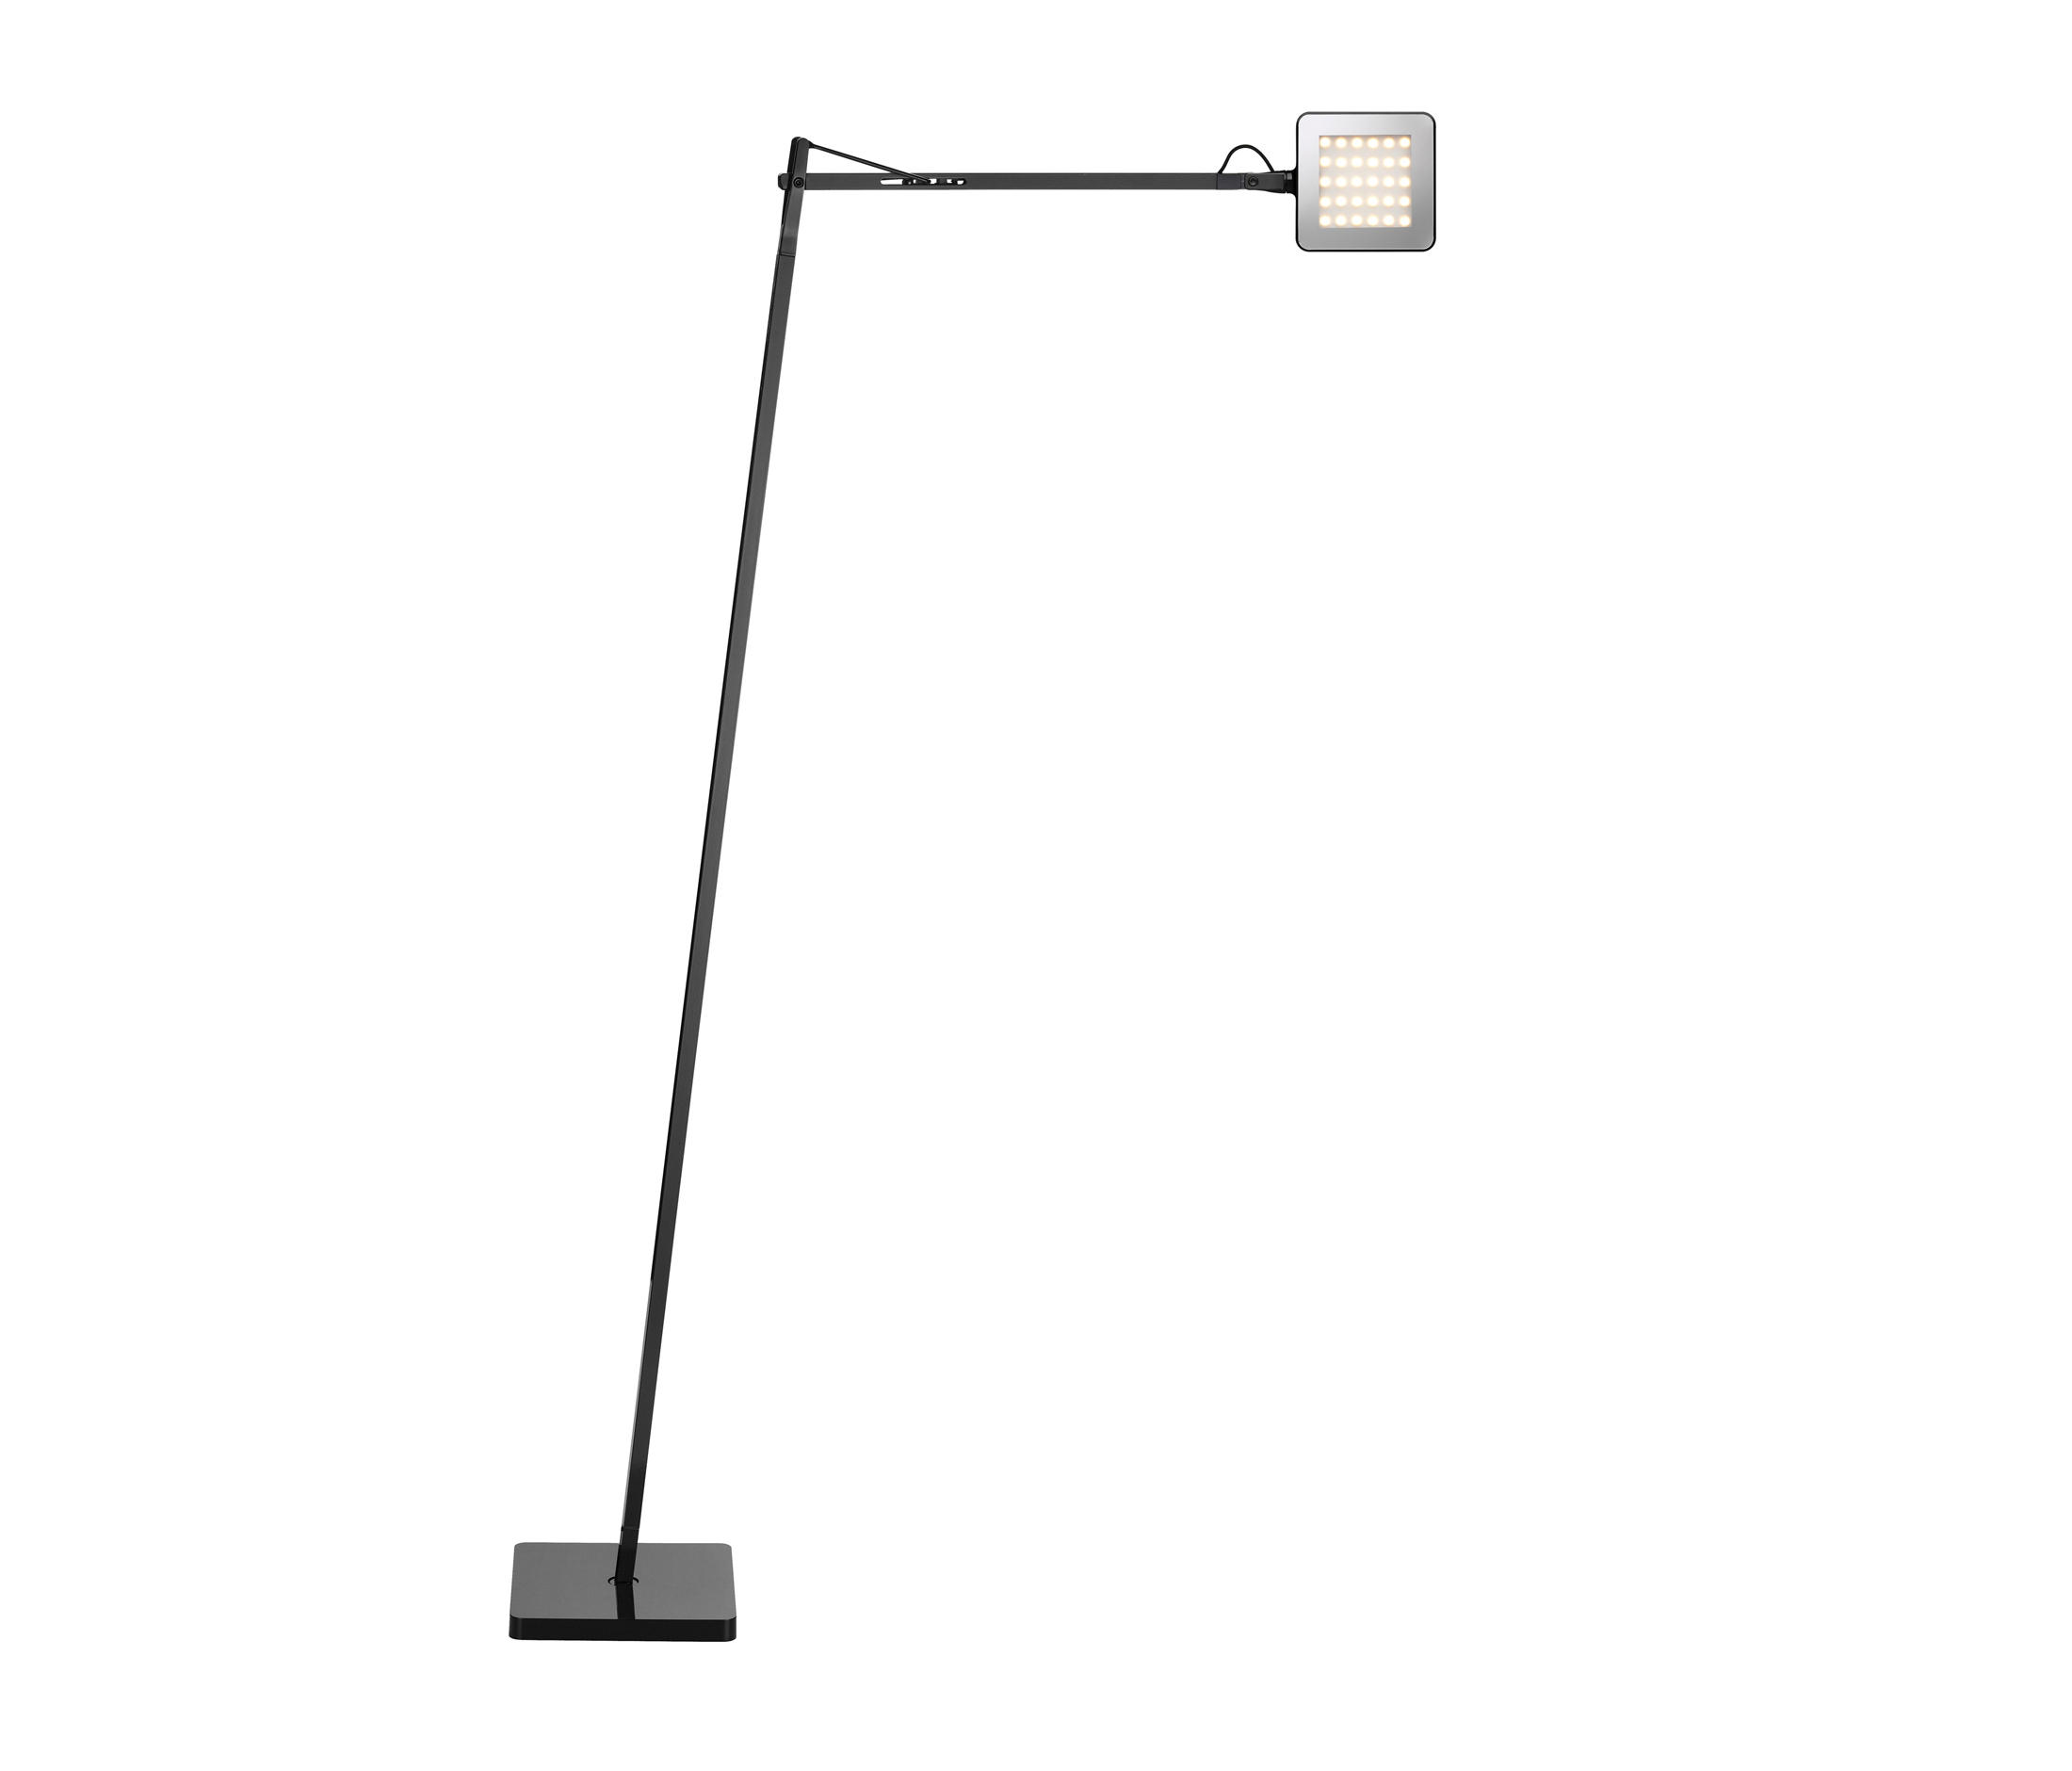 kelvin led f general lighting from flos architonic. Black Bedroom Furniture Sets. Home Design Ideas